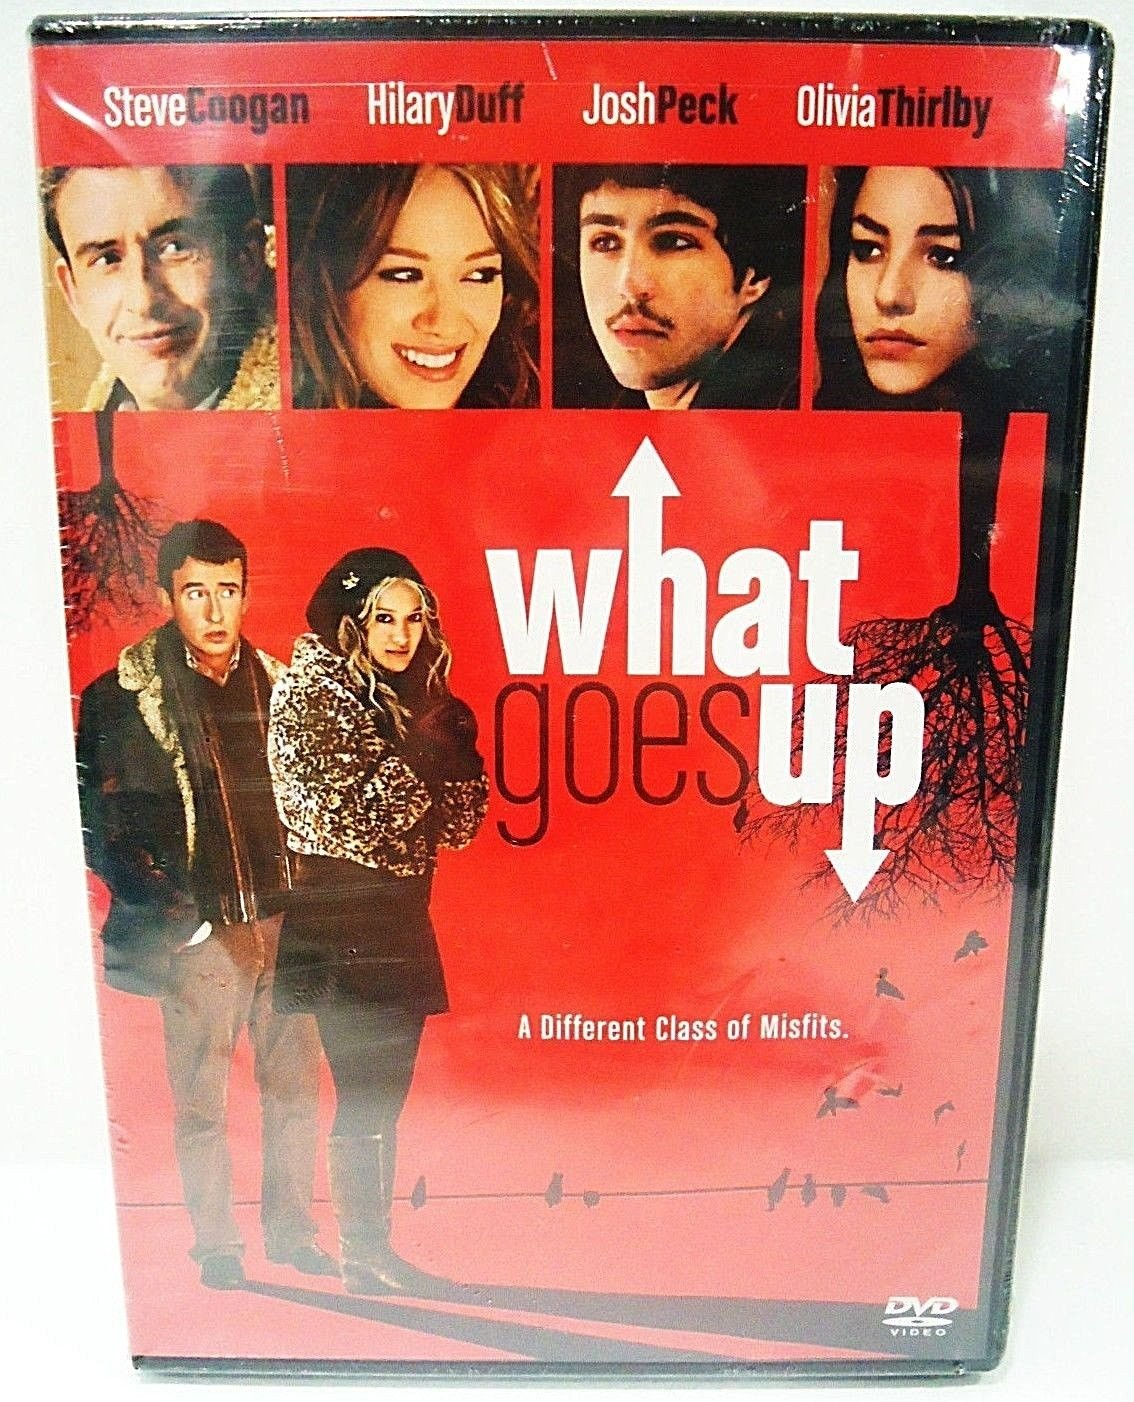 WHAT GOES UP - DVD - HILLARY DUFF - JOSH PECK - BRAND NEW - COMEDY - MOVIE